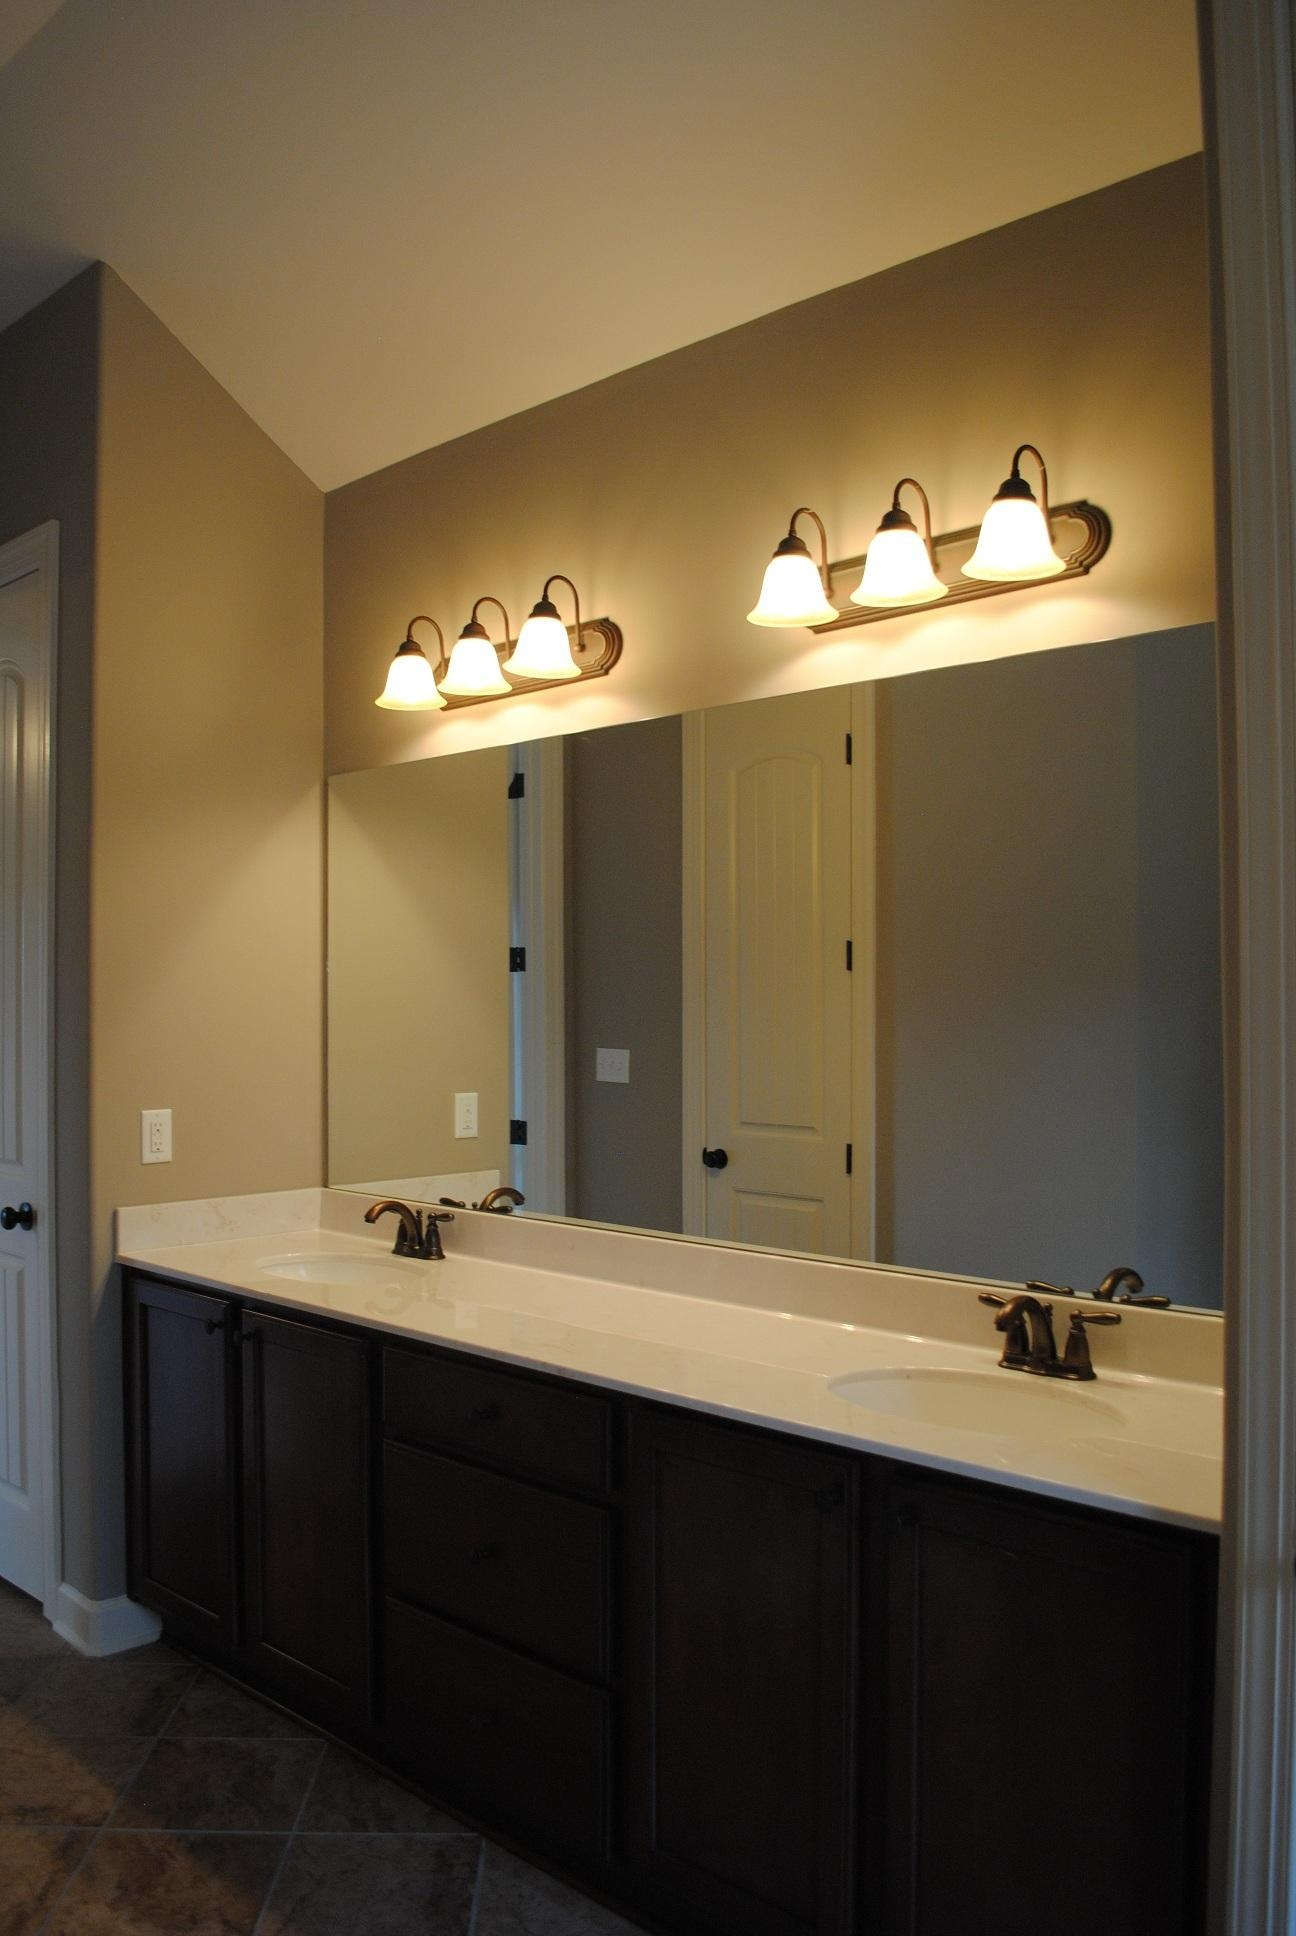 Bathroom Vanity Lights And Mirrors | Home Design Ideas Inside Bathroom Lights And Mirrors (Image 12 of 20)